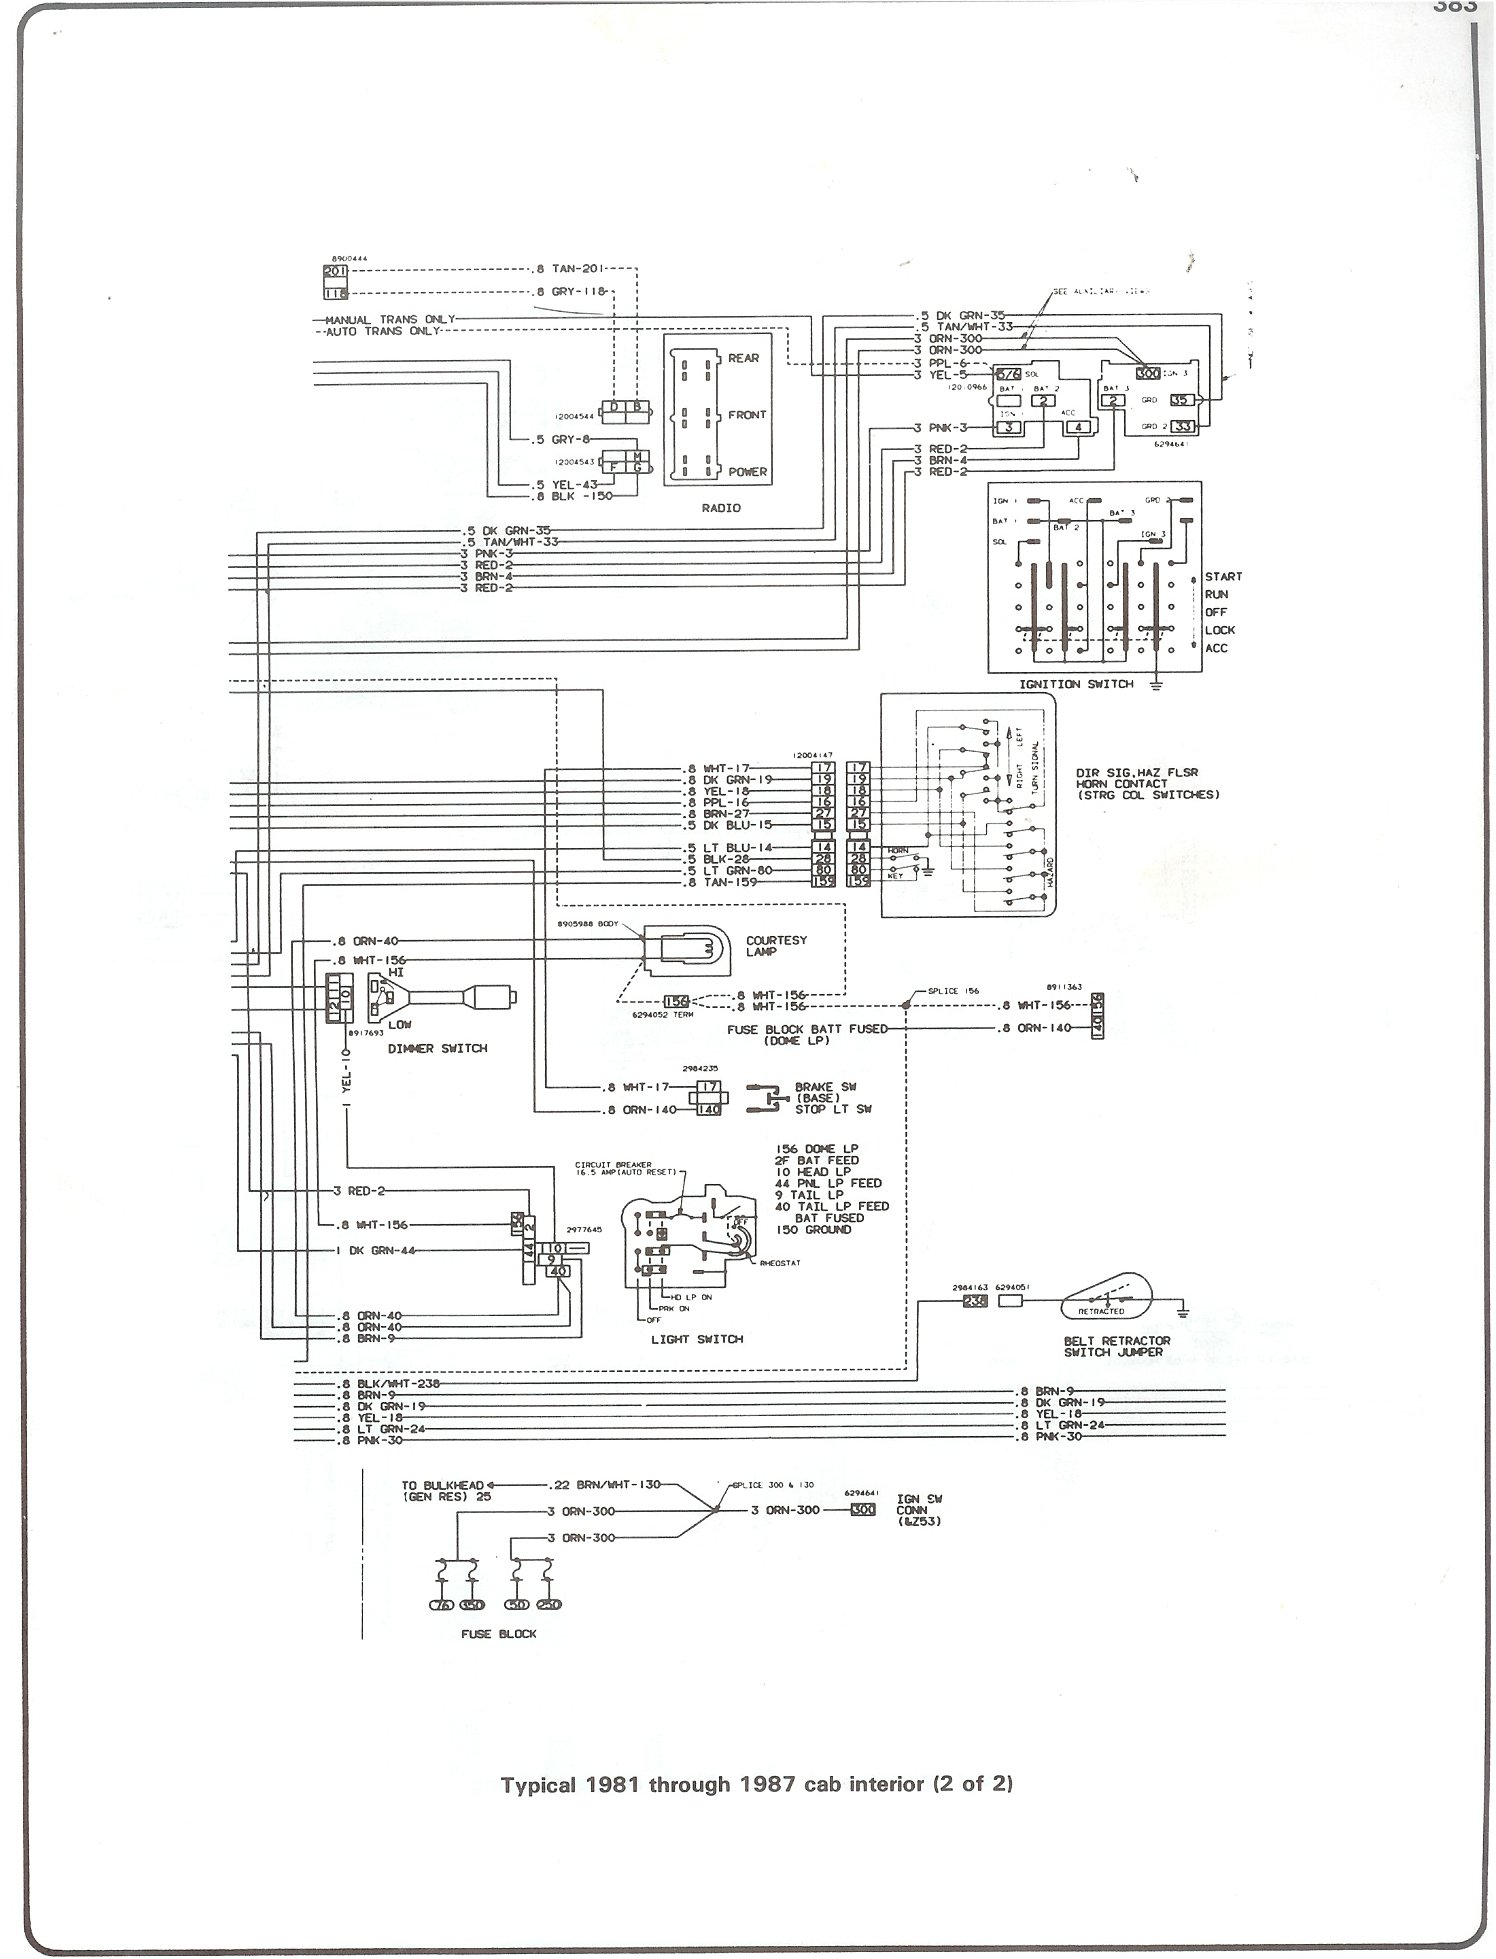 81 87_cab_inter_pg2 electrical diagrams chevy only page 2 truck forum 1983 chevy c10 fuse box diagram at creativeand.co